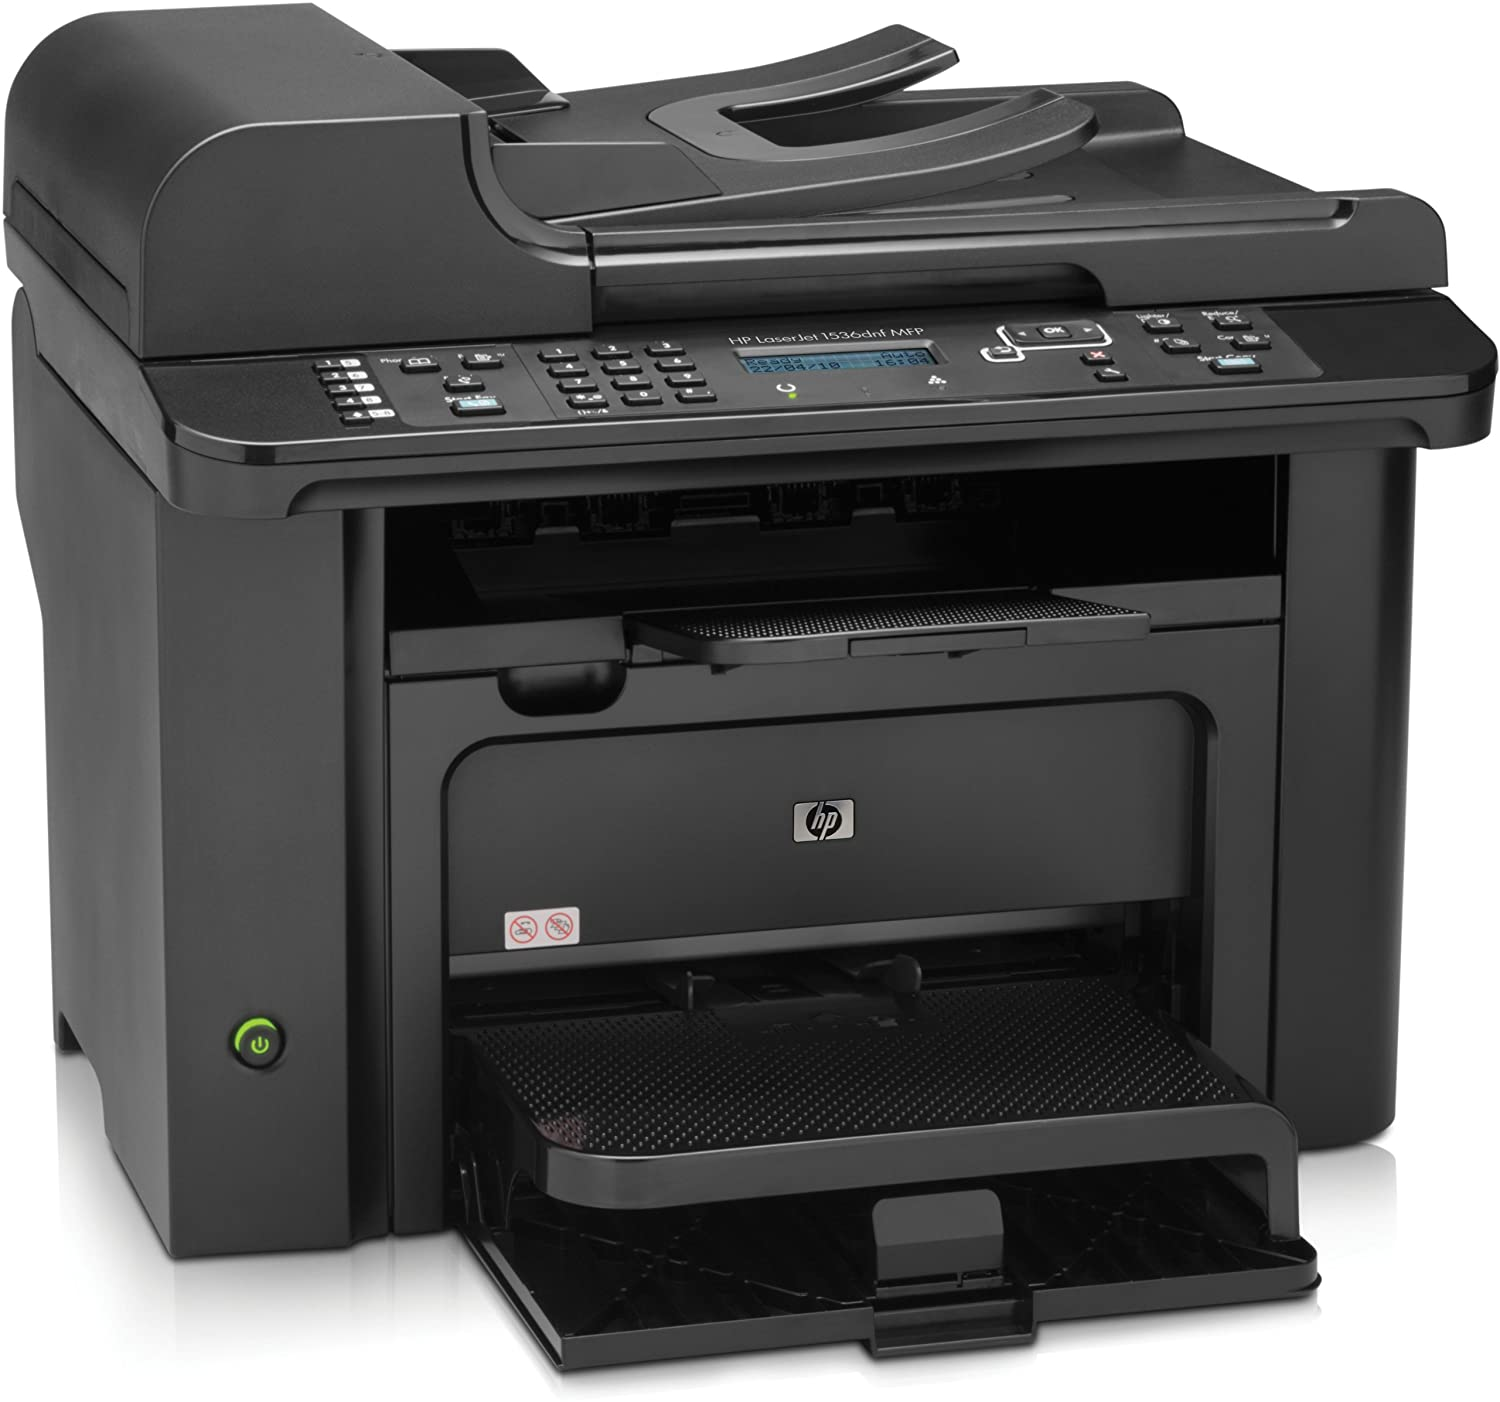 HP M1530 DRIVERS FOR WINDOWS XP